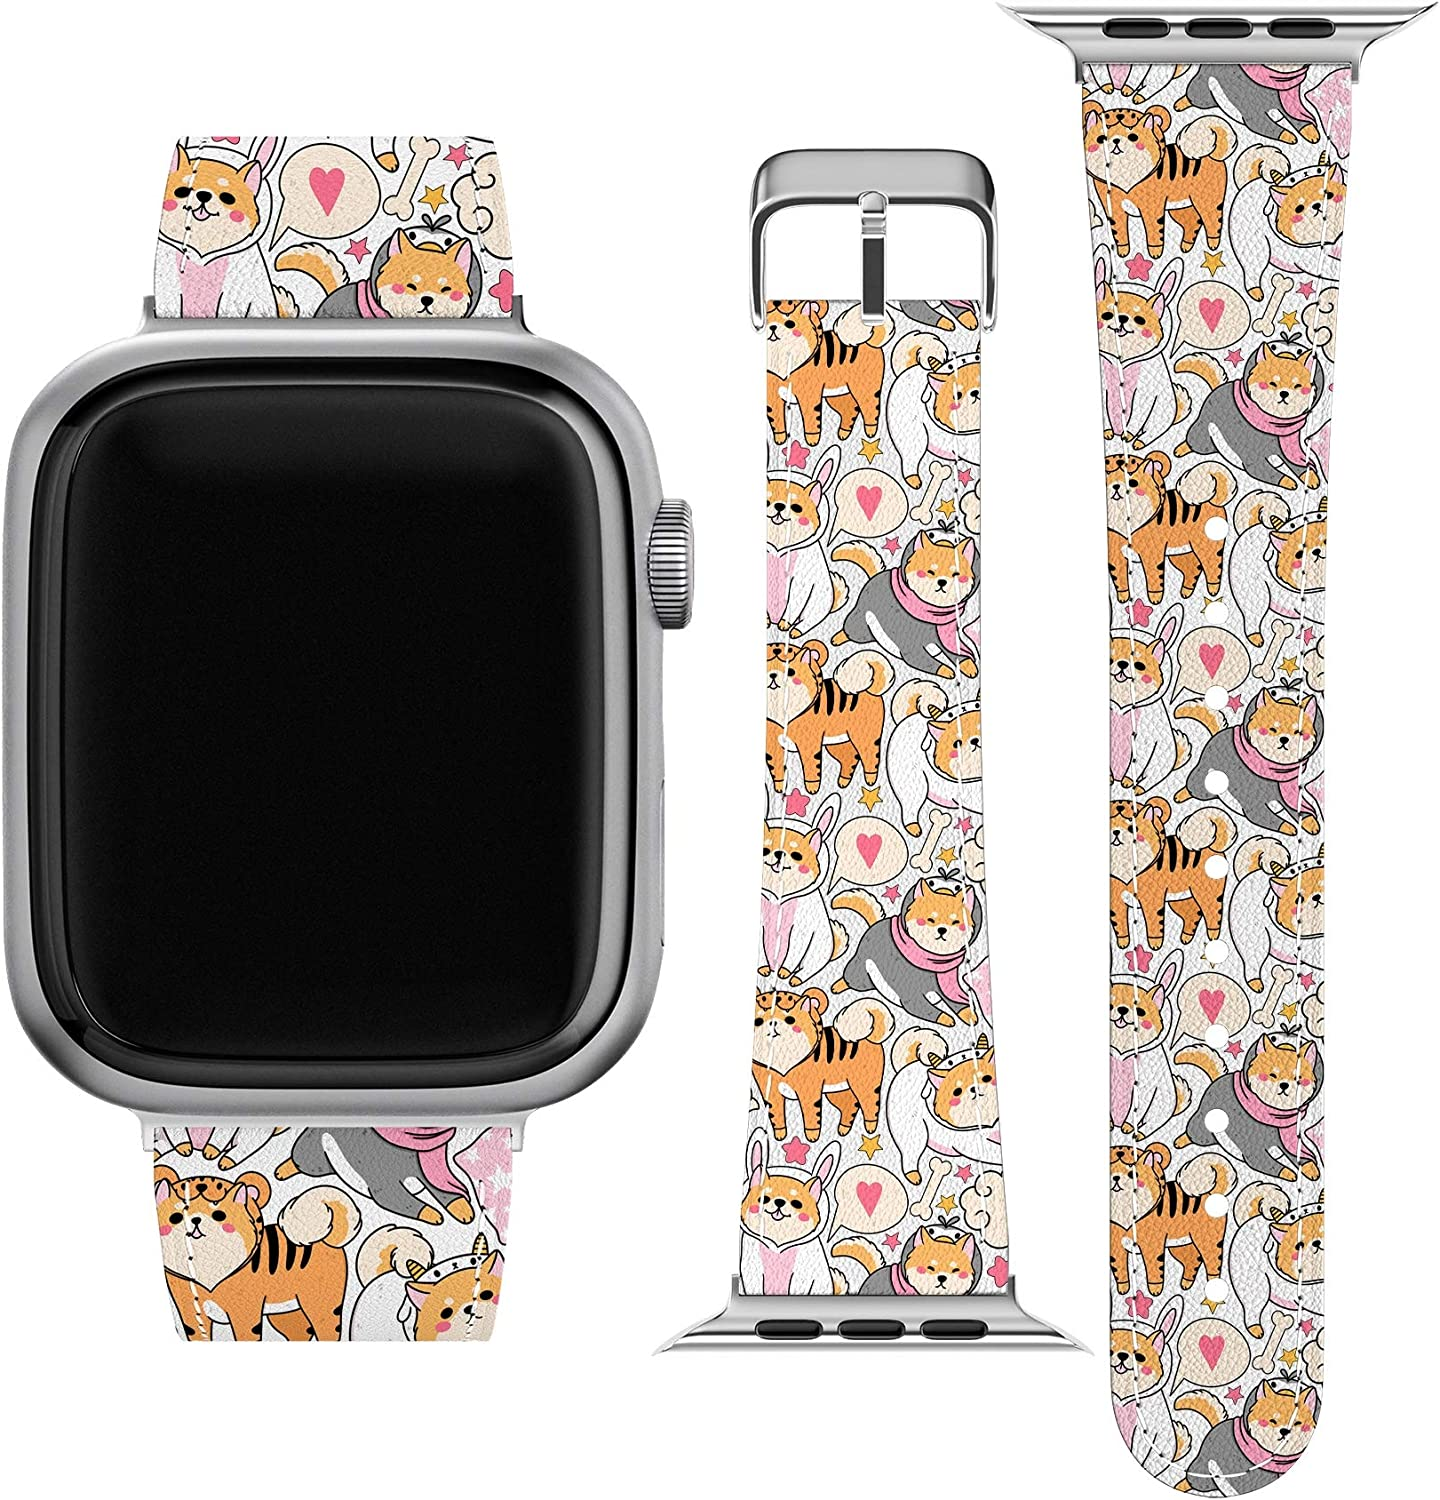 Lex Altern Band Compatible with Apple Watch Series 6 SE 5 4 3 2 1 38mm 40mm 42mm 44mm Kawaii Dog Shiba Inu Puppies Thin Vegan Leather Durable Stylish Print Pet Cute Japanese Replacement Strap wh431